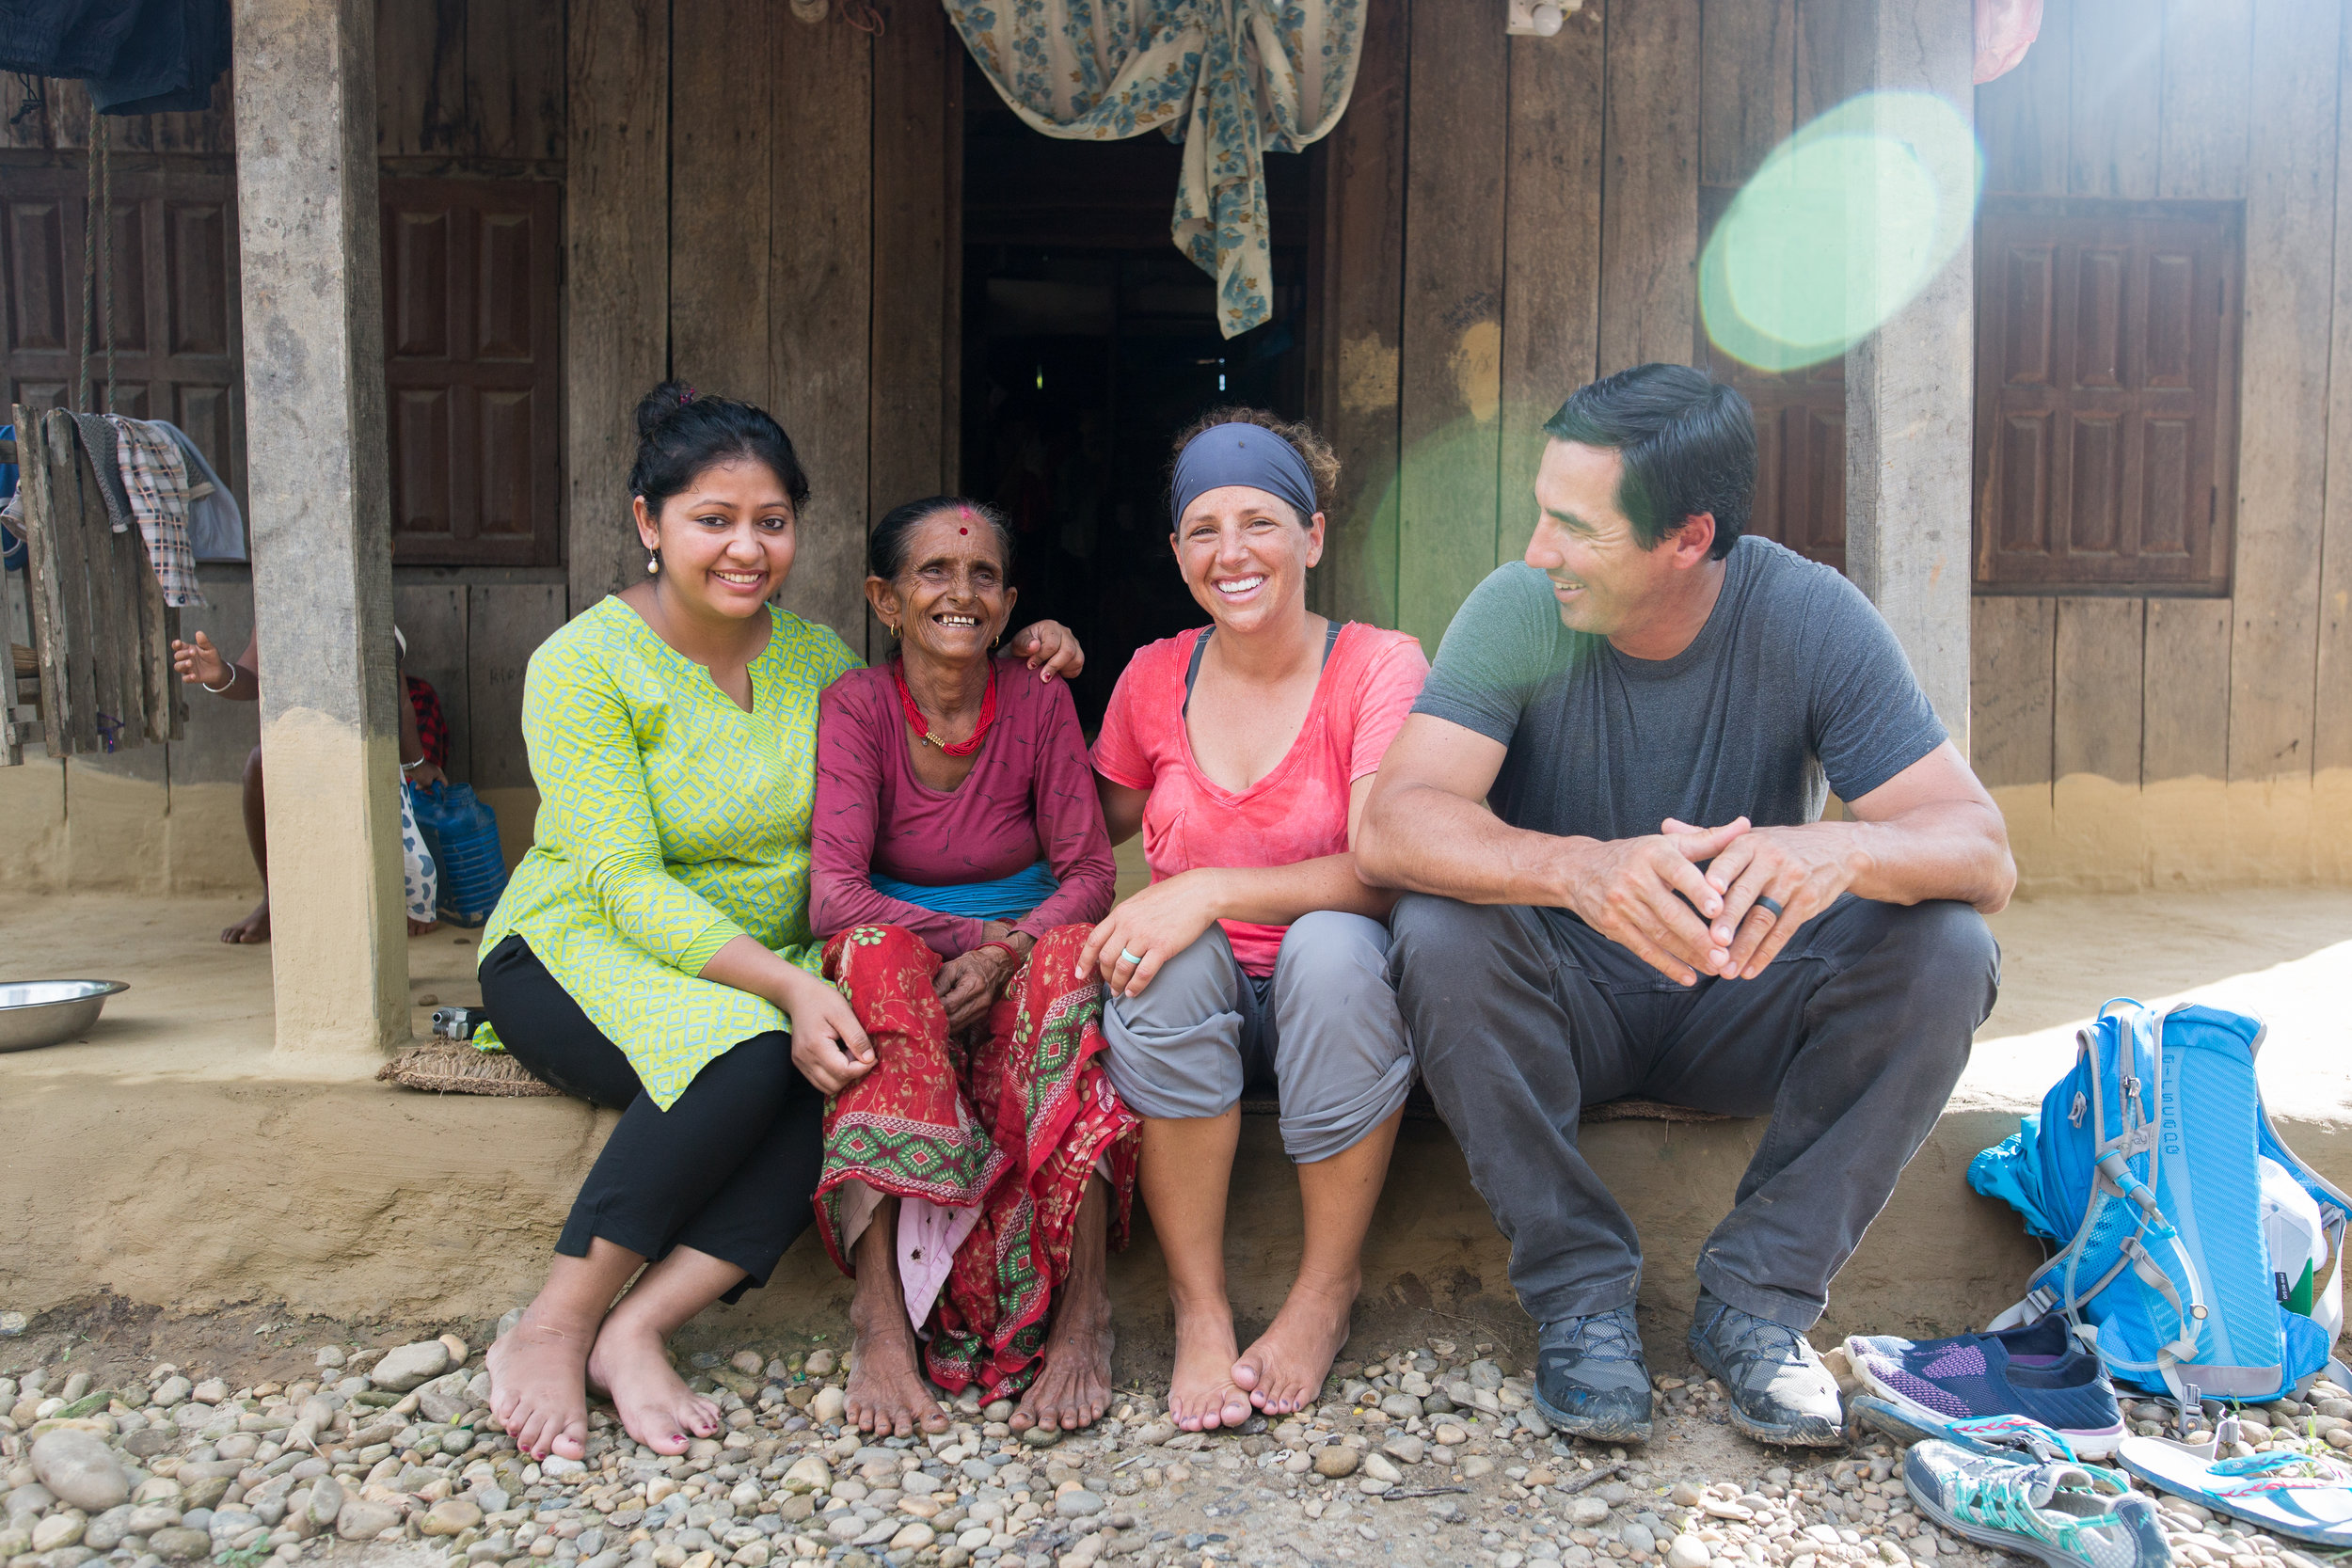 Harikula Sahi (second from the left) shares her powerful story with the team as Roshani translates.